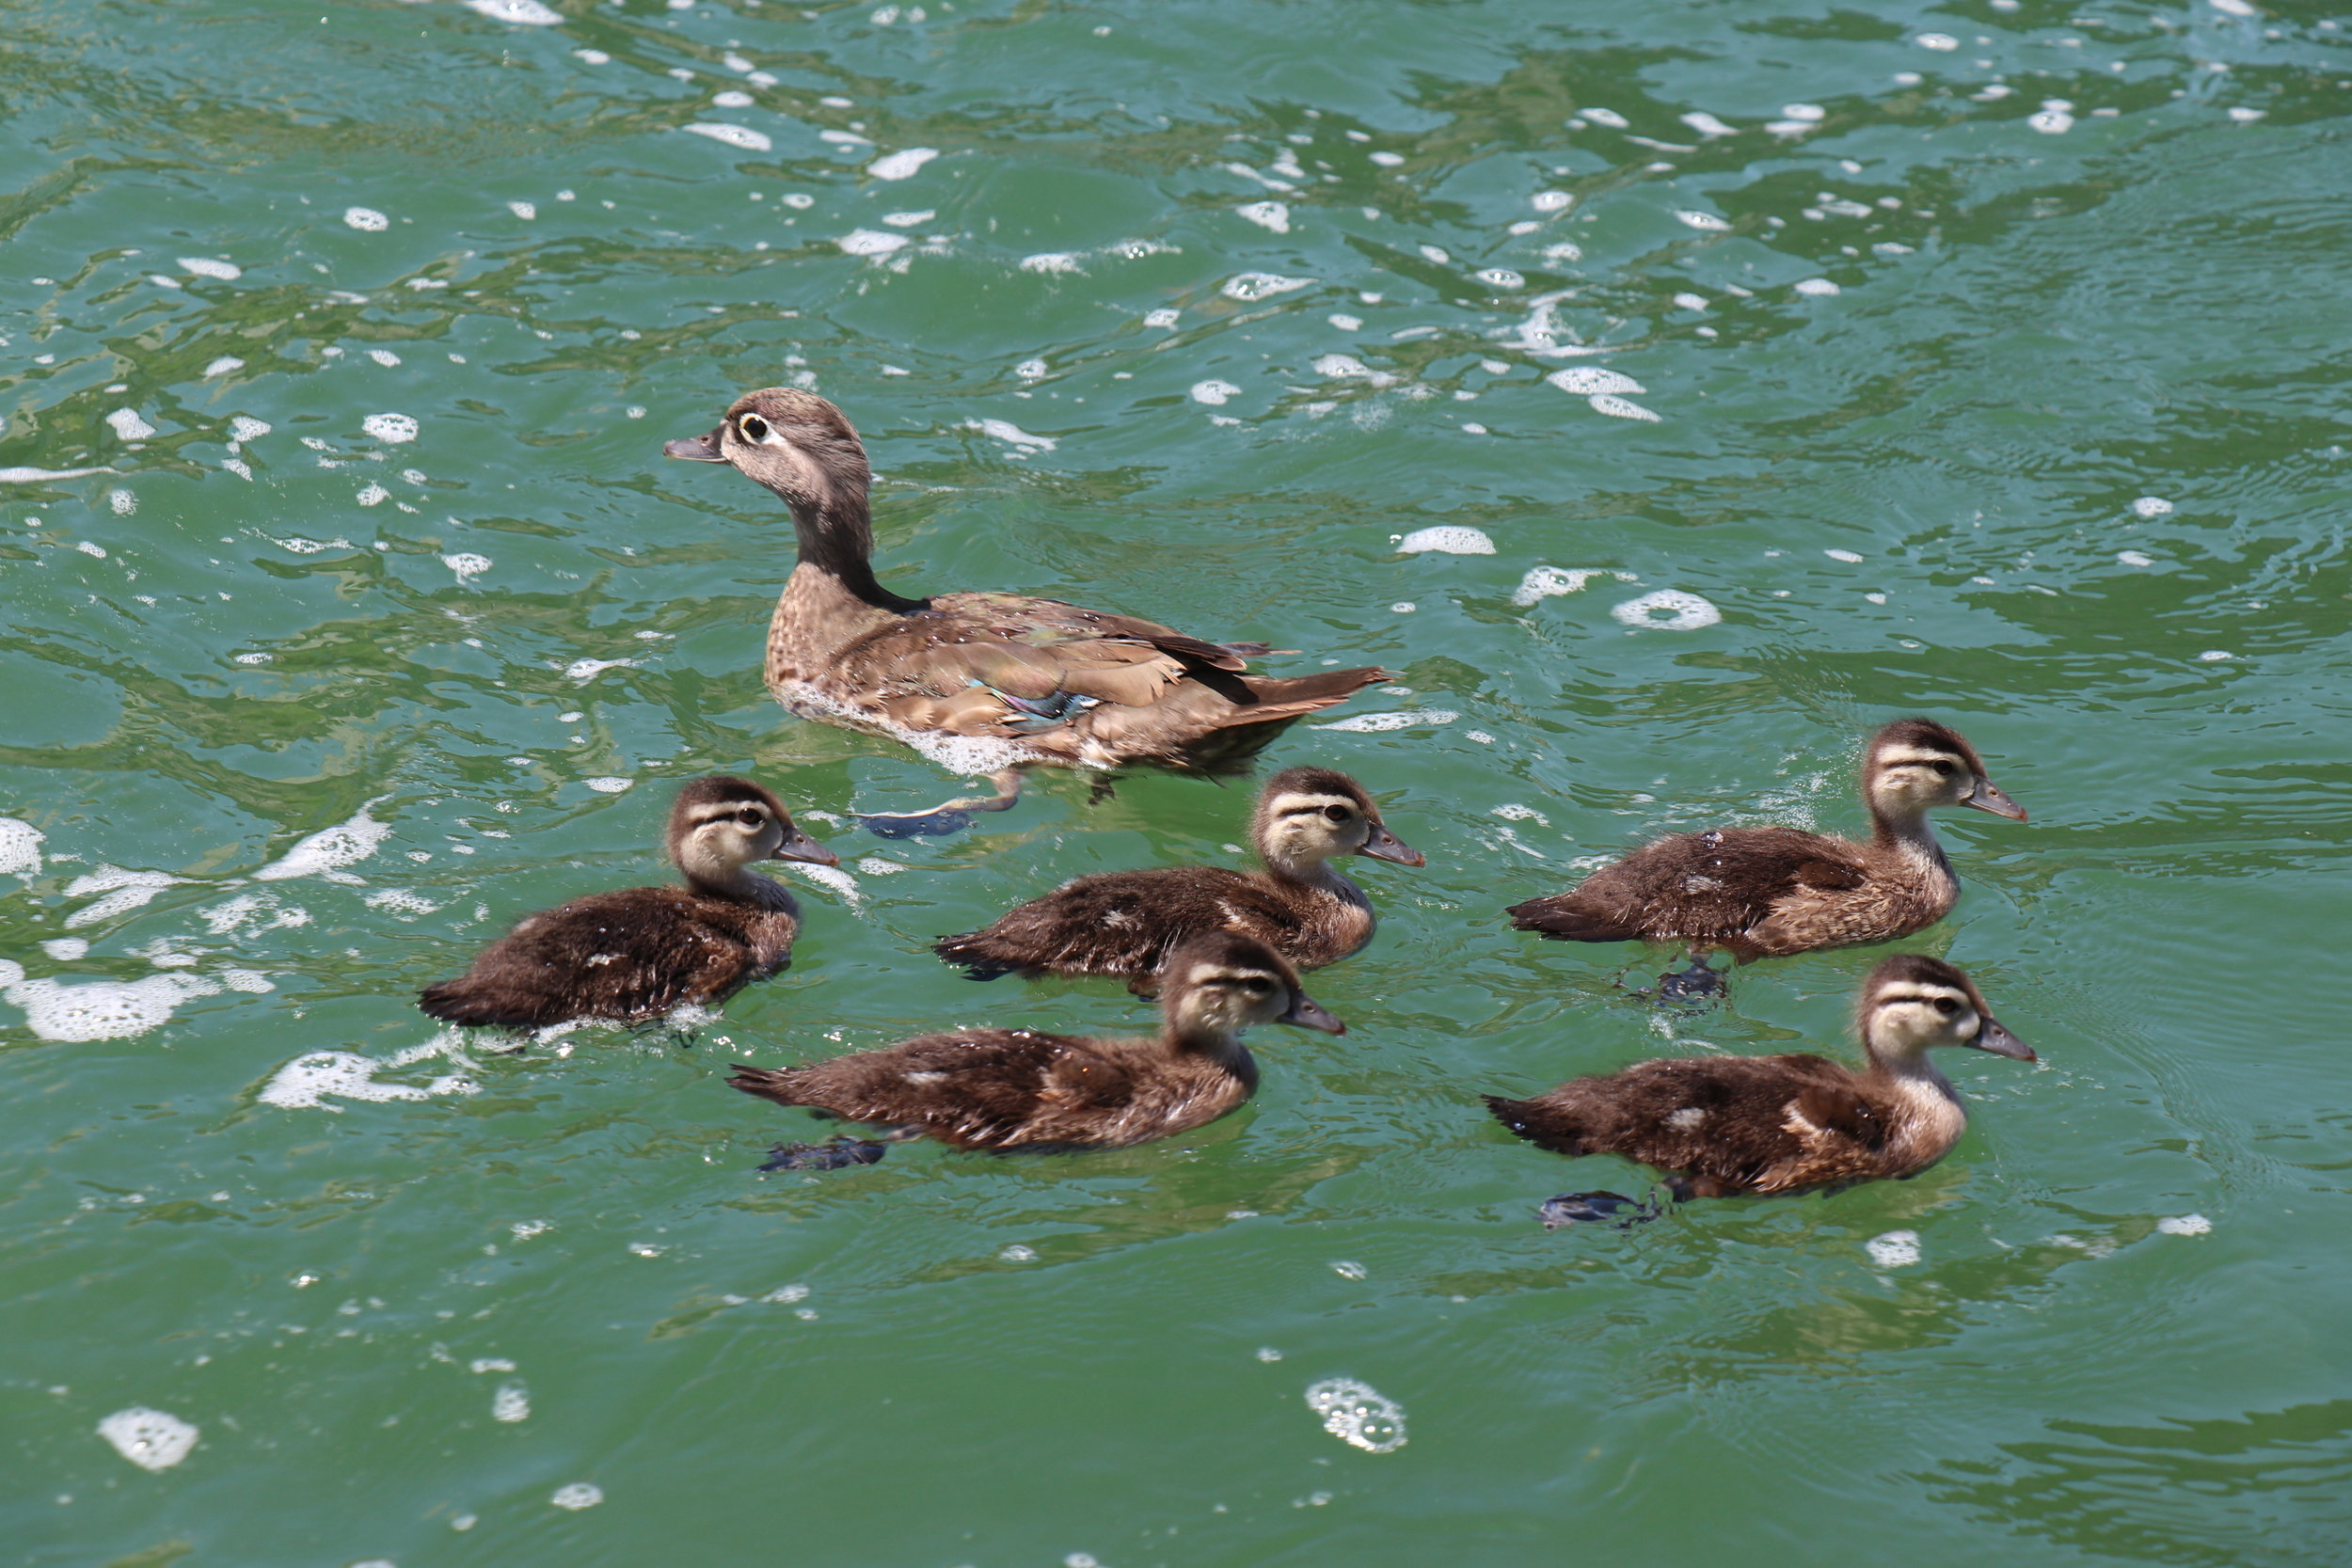 The water was higher than any of us had ever seen. This mama and her babies were paddling against the current for quite a while. We were all relieved to see them make it safely to shore.